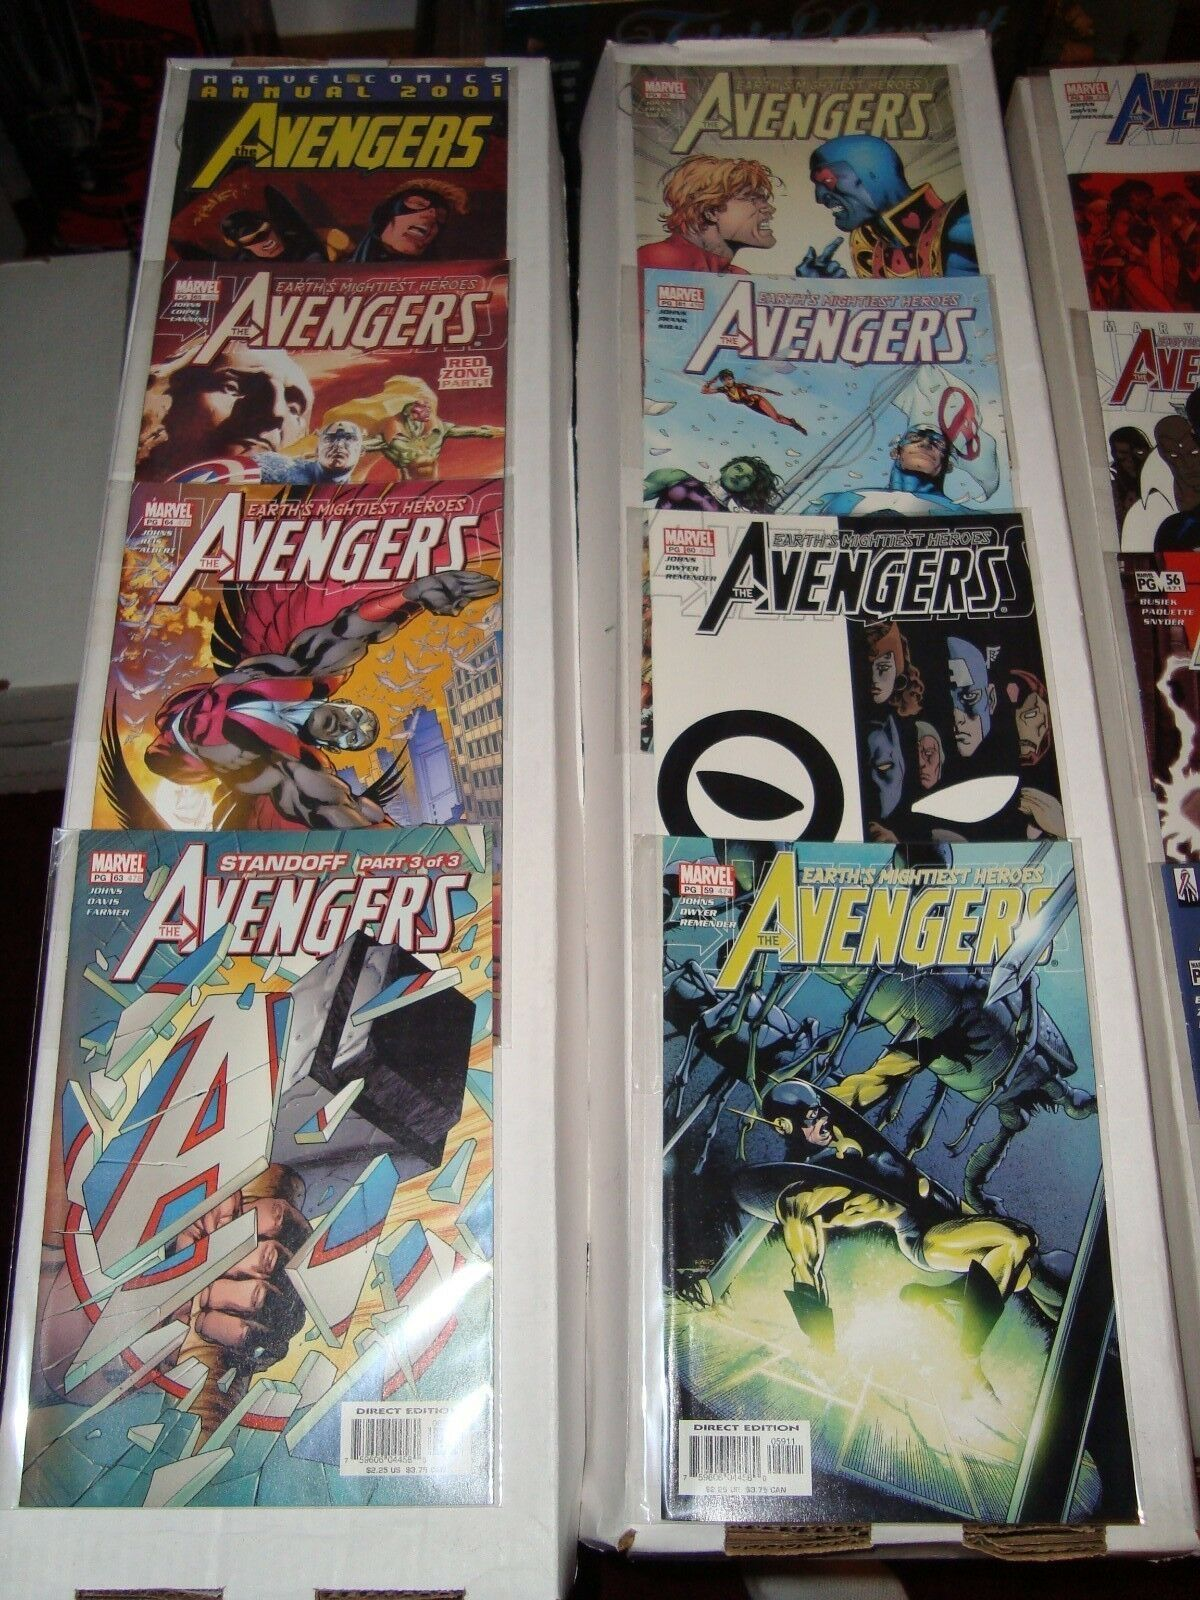 Avengers #456 - 480 + Annual Marvel Comic Book Run From 2001-03 NM Condition